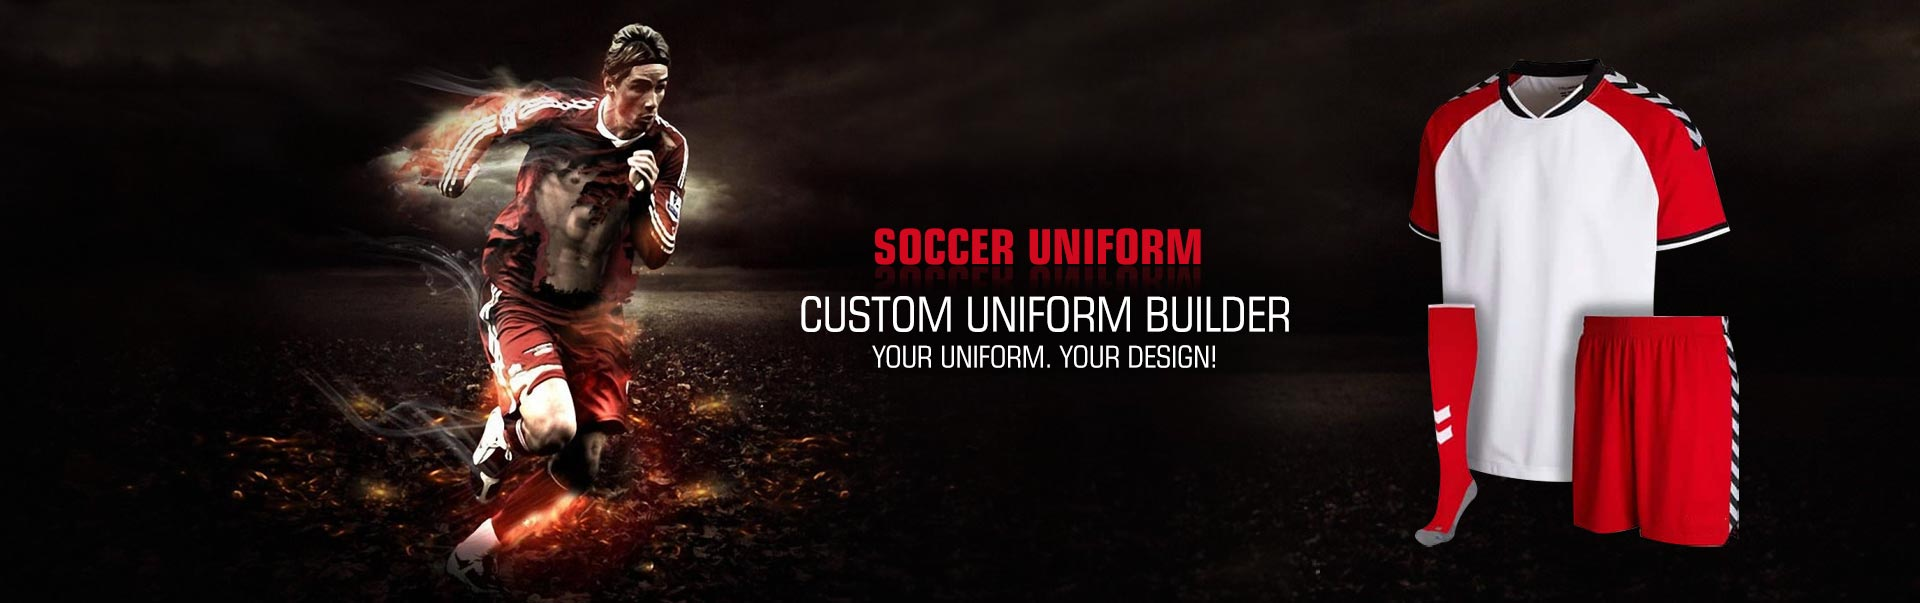 Soccer Uniform Wholesaler, Suppliers in Palmdale